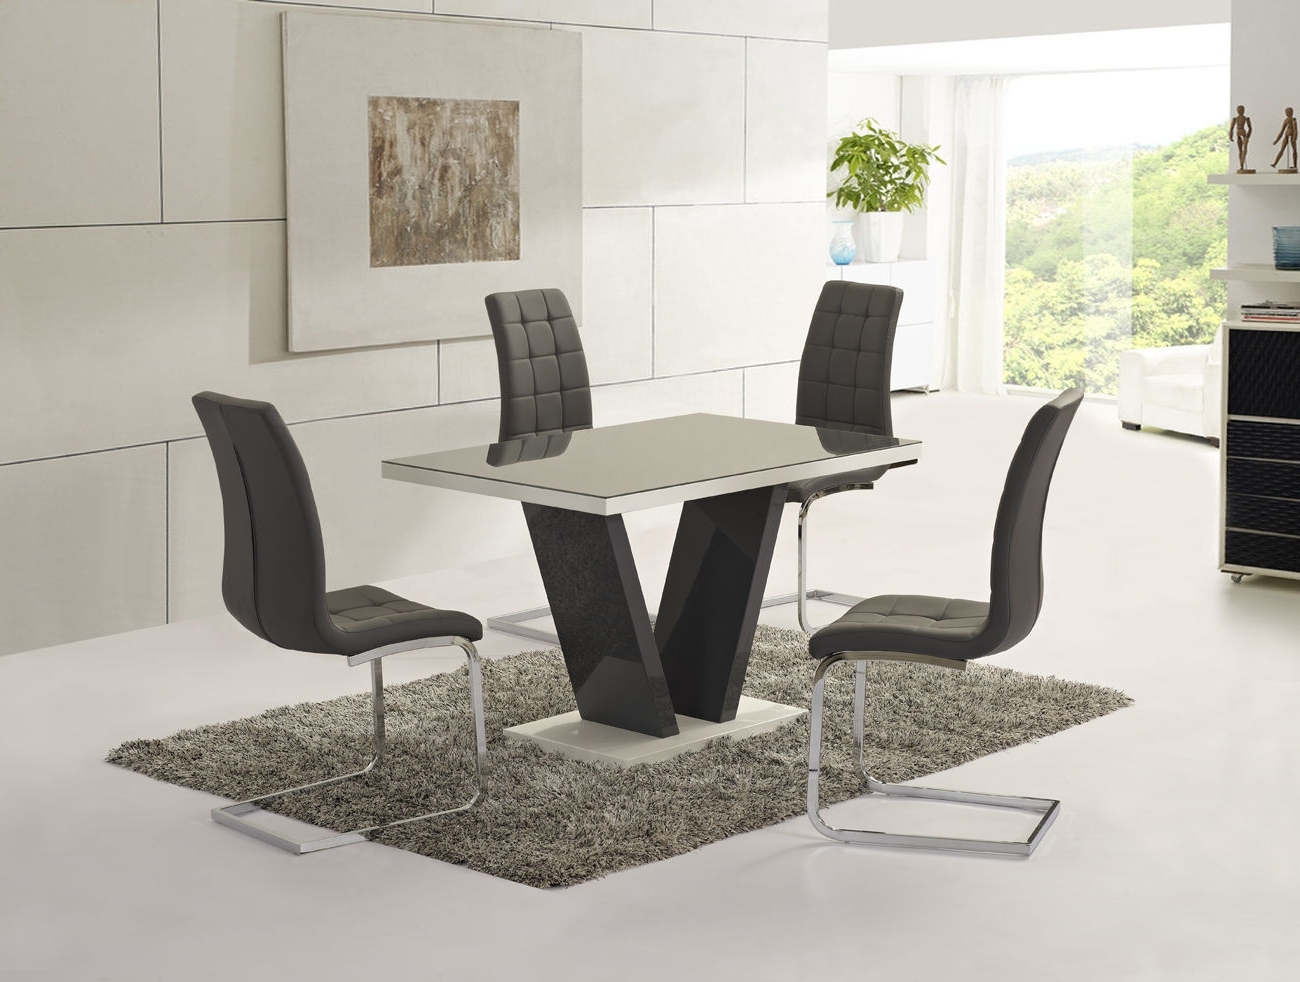 Gloss White Dining Tables And Chairs Within Latest Ga Vico Gloss Grey Glass Top Designer 160Cm Dining Set – 4 6 Grey (View 15 of 25)